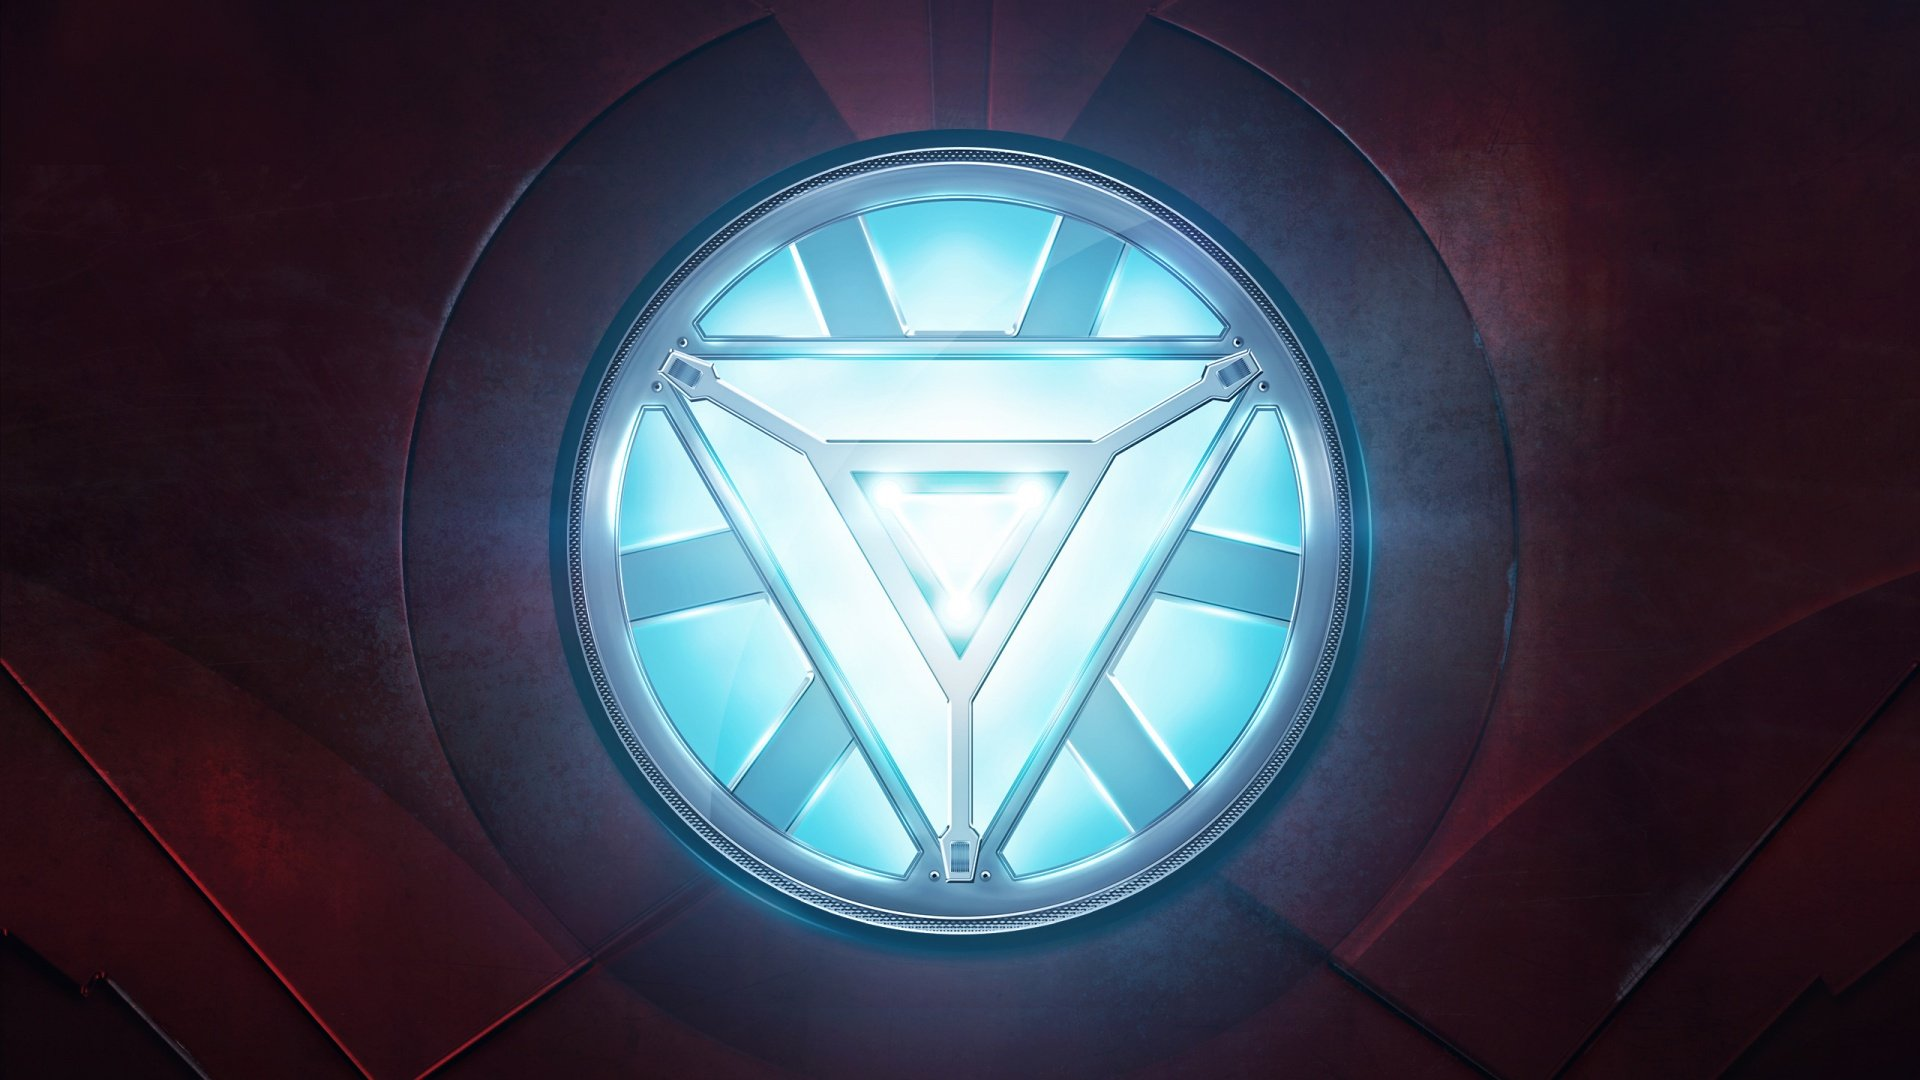 Shield Background Wallpaper Agents of Shield Action Drama